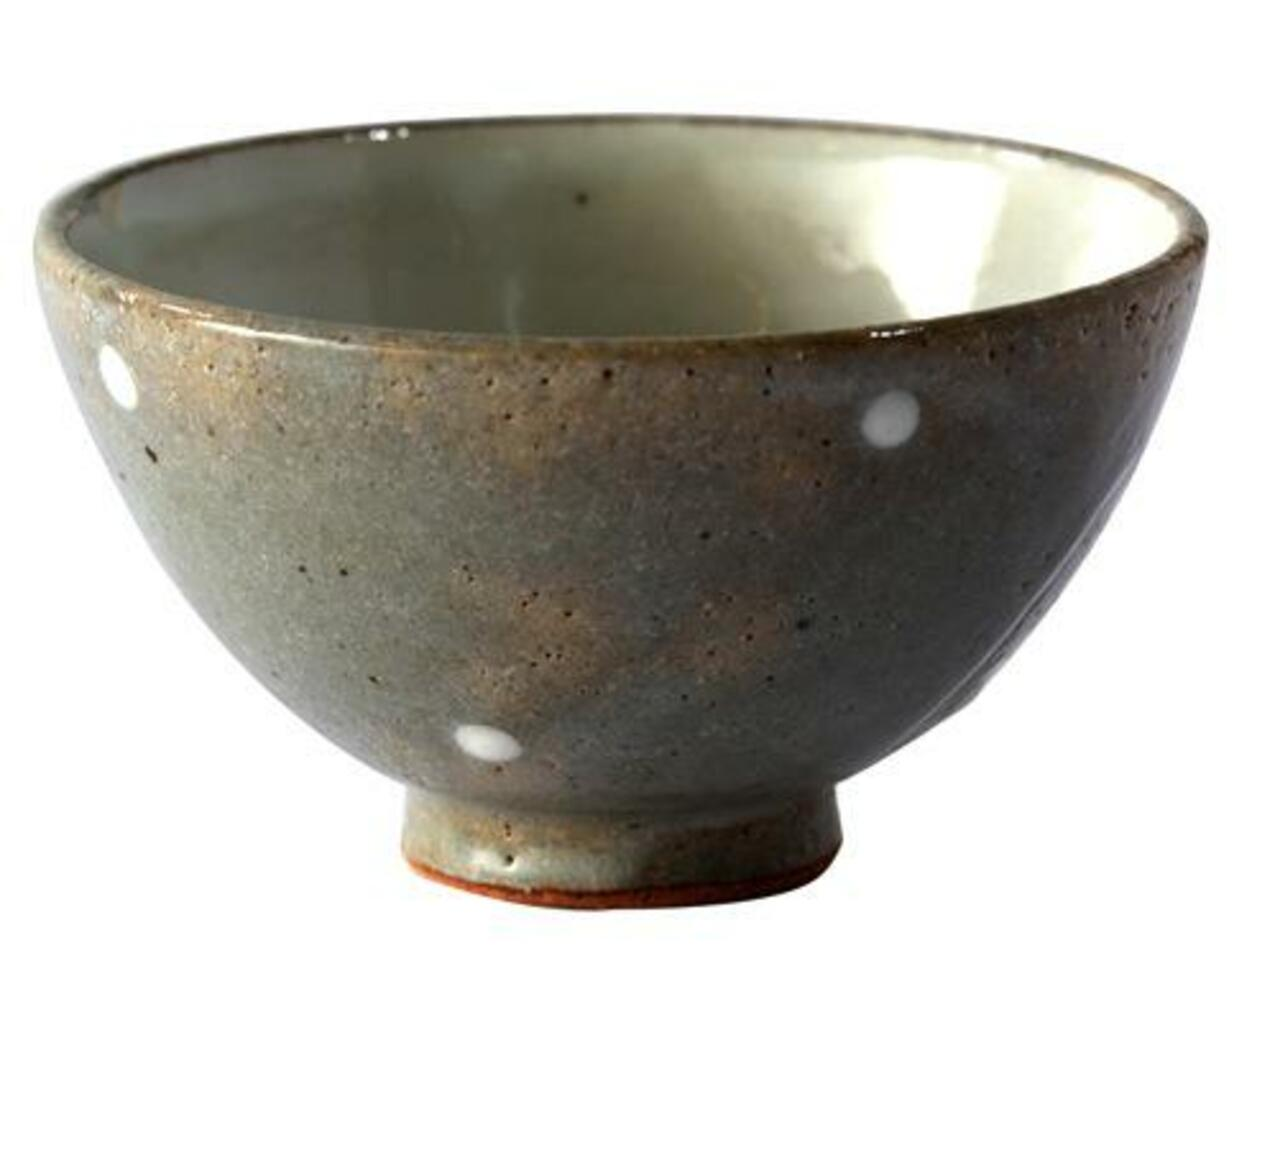 How much do we love this bowl by artist Hondaya Syokiten #ceramics #Japan  http://bit.ly/1IkBUHU http://t.co/MNidBkGse5